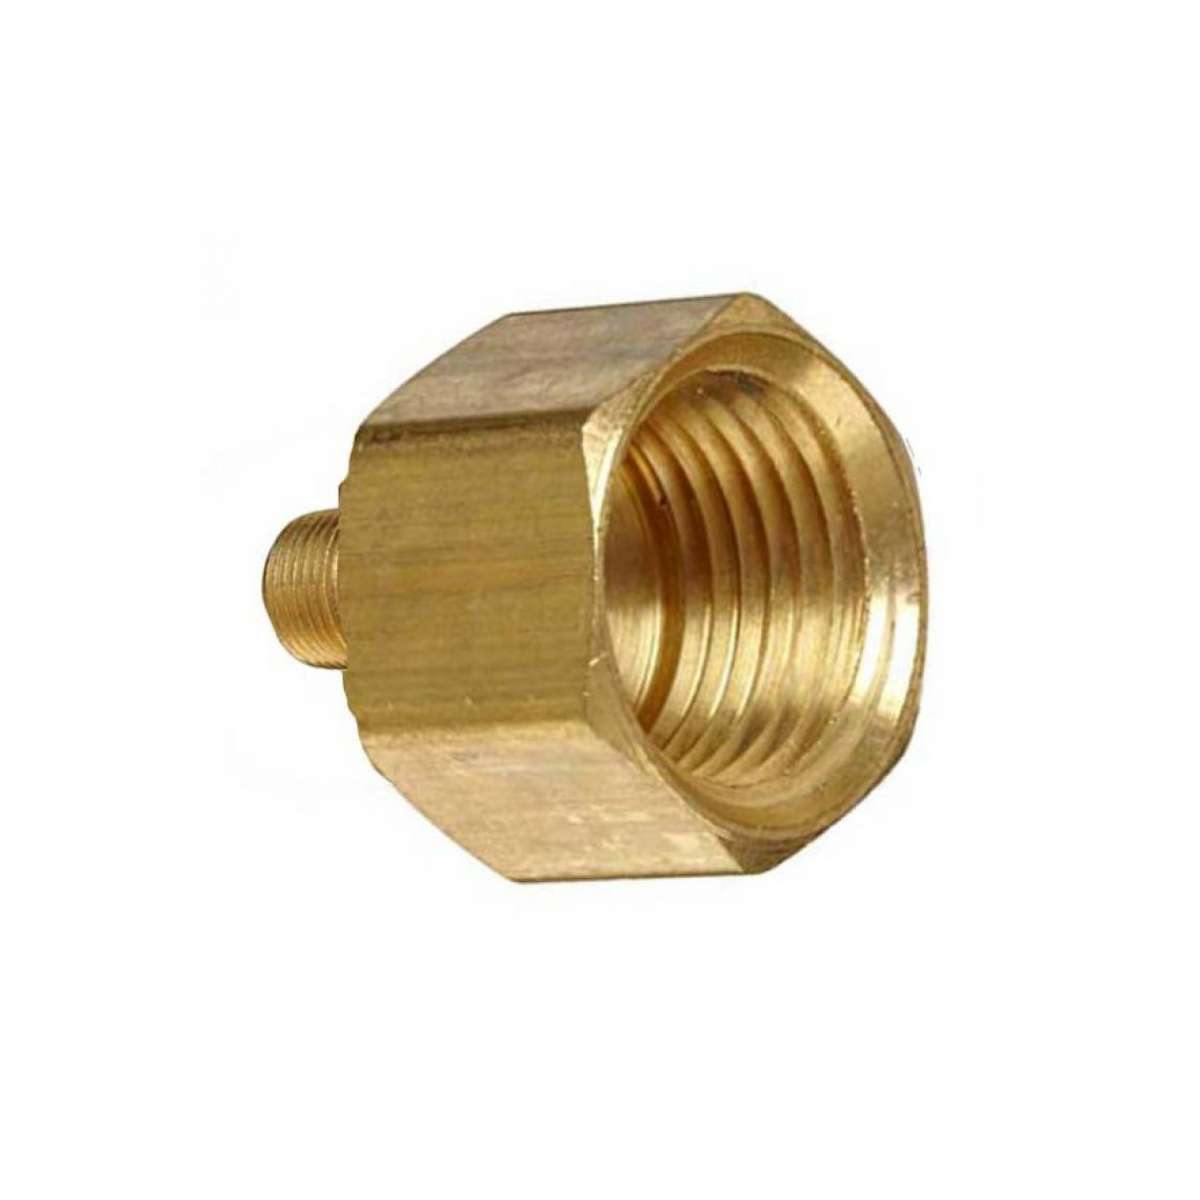 "Easylube Fitting 1/2"" (F) x 1/8"" (M) STRAIGHT"